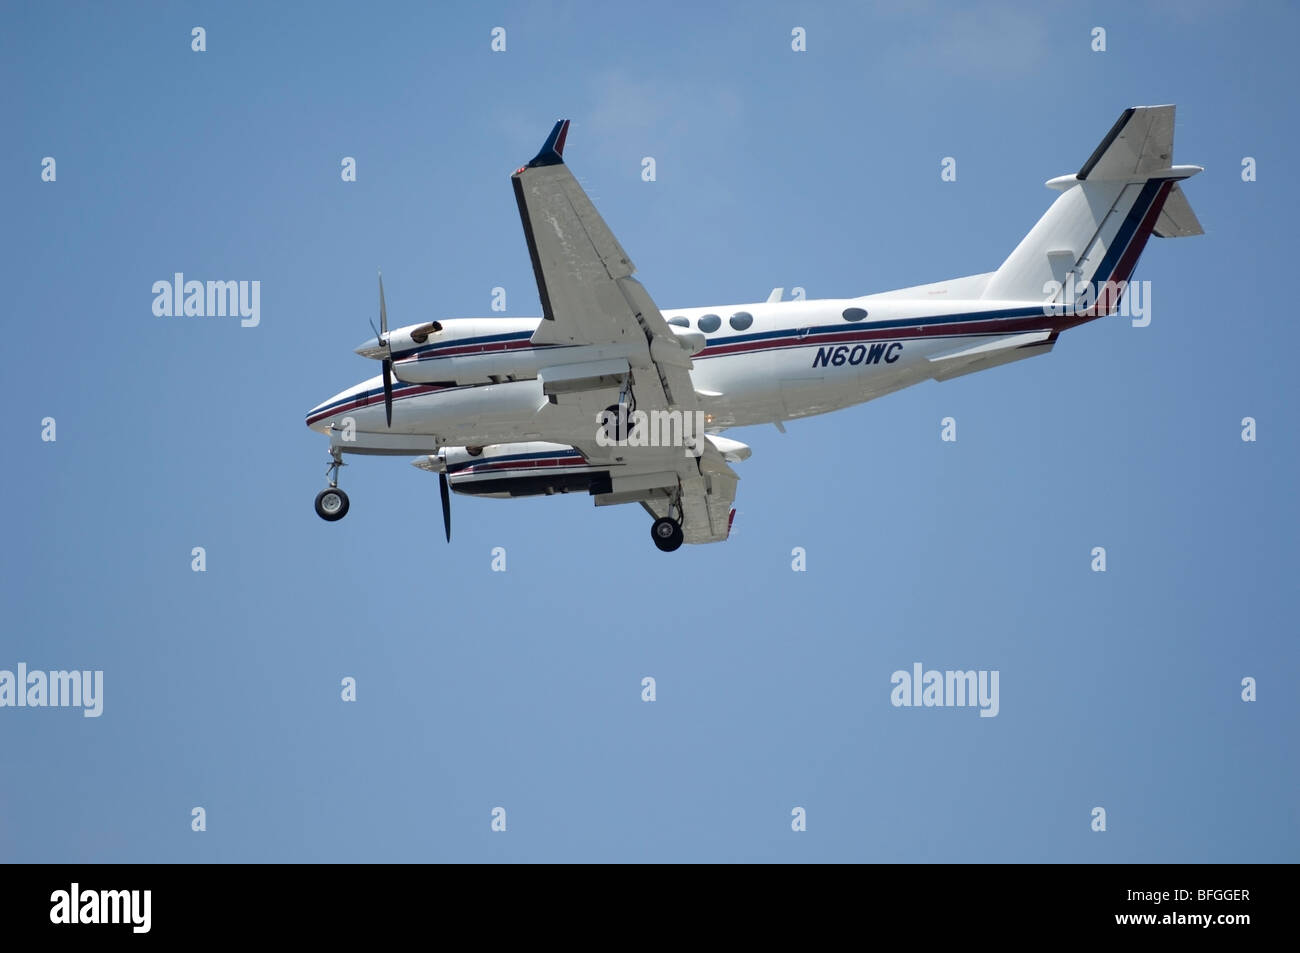 Twin Turboprop landing-  Beech Super King Air 350 Fixed wing multi engine (19 seats / 2 engines) - Stock Image